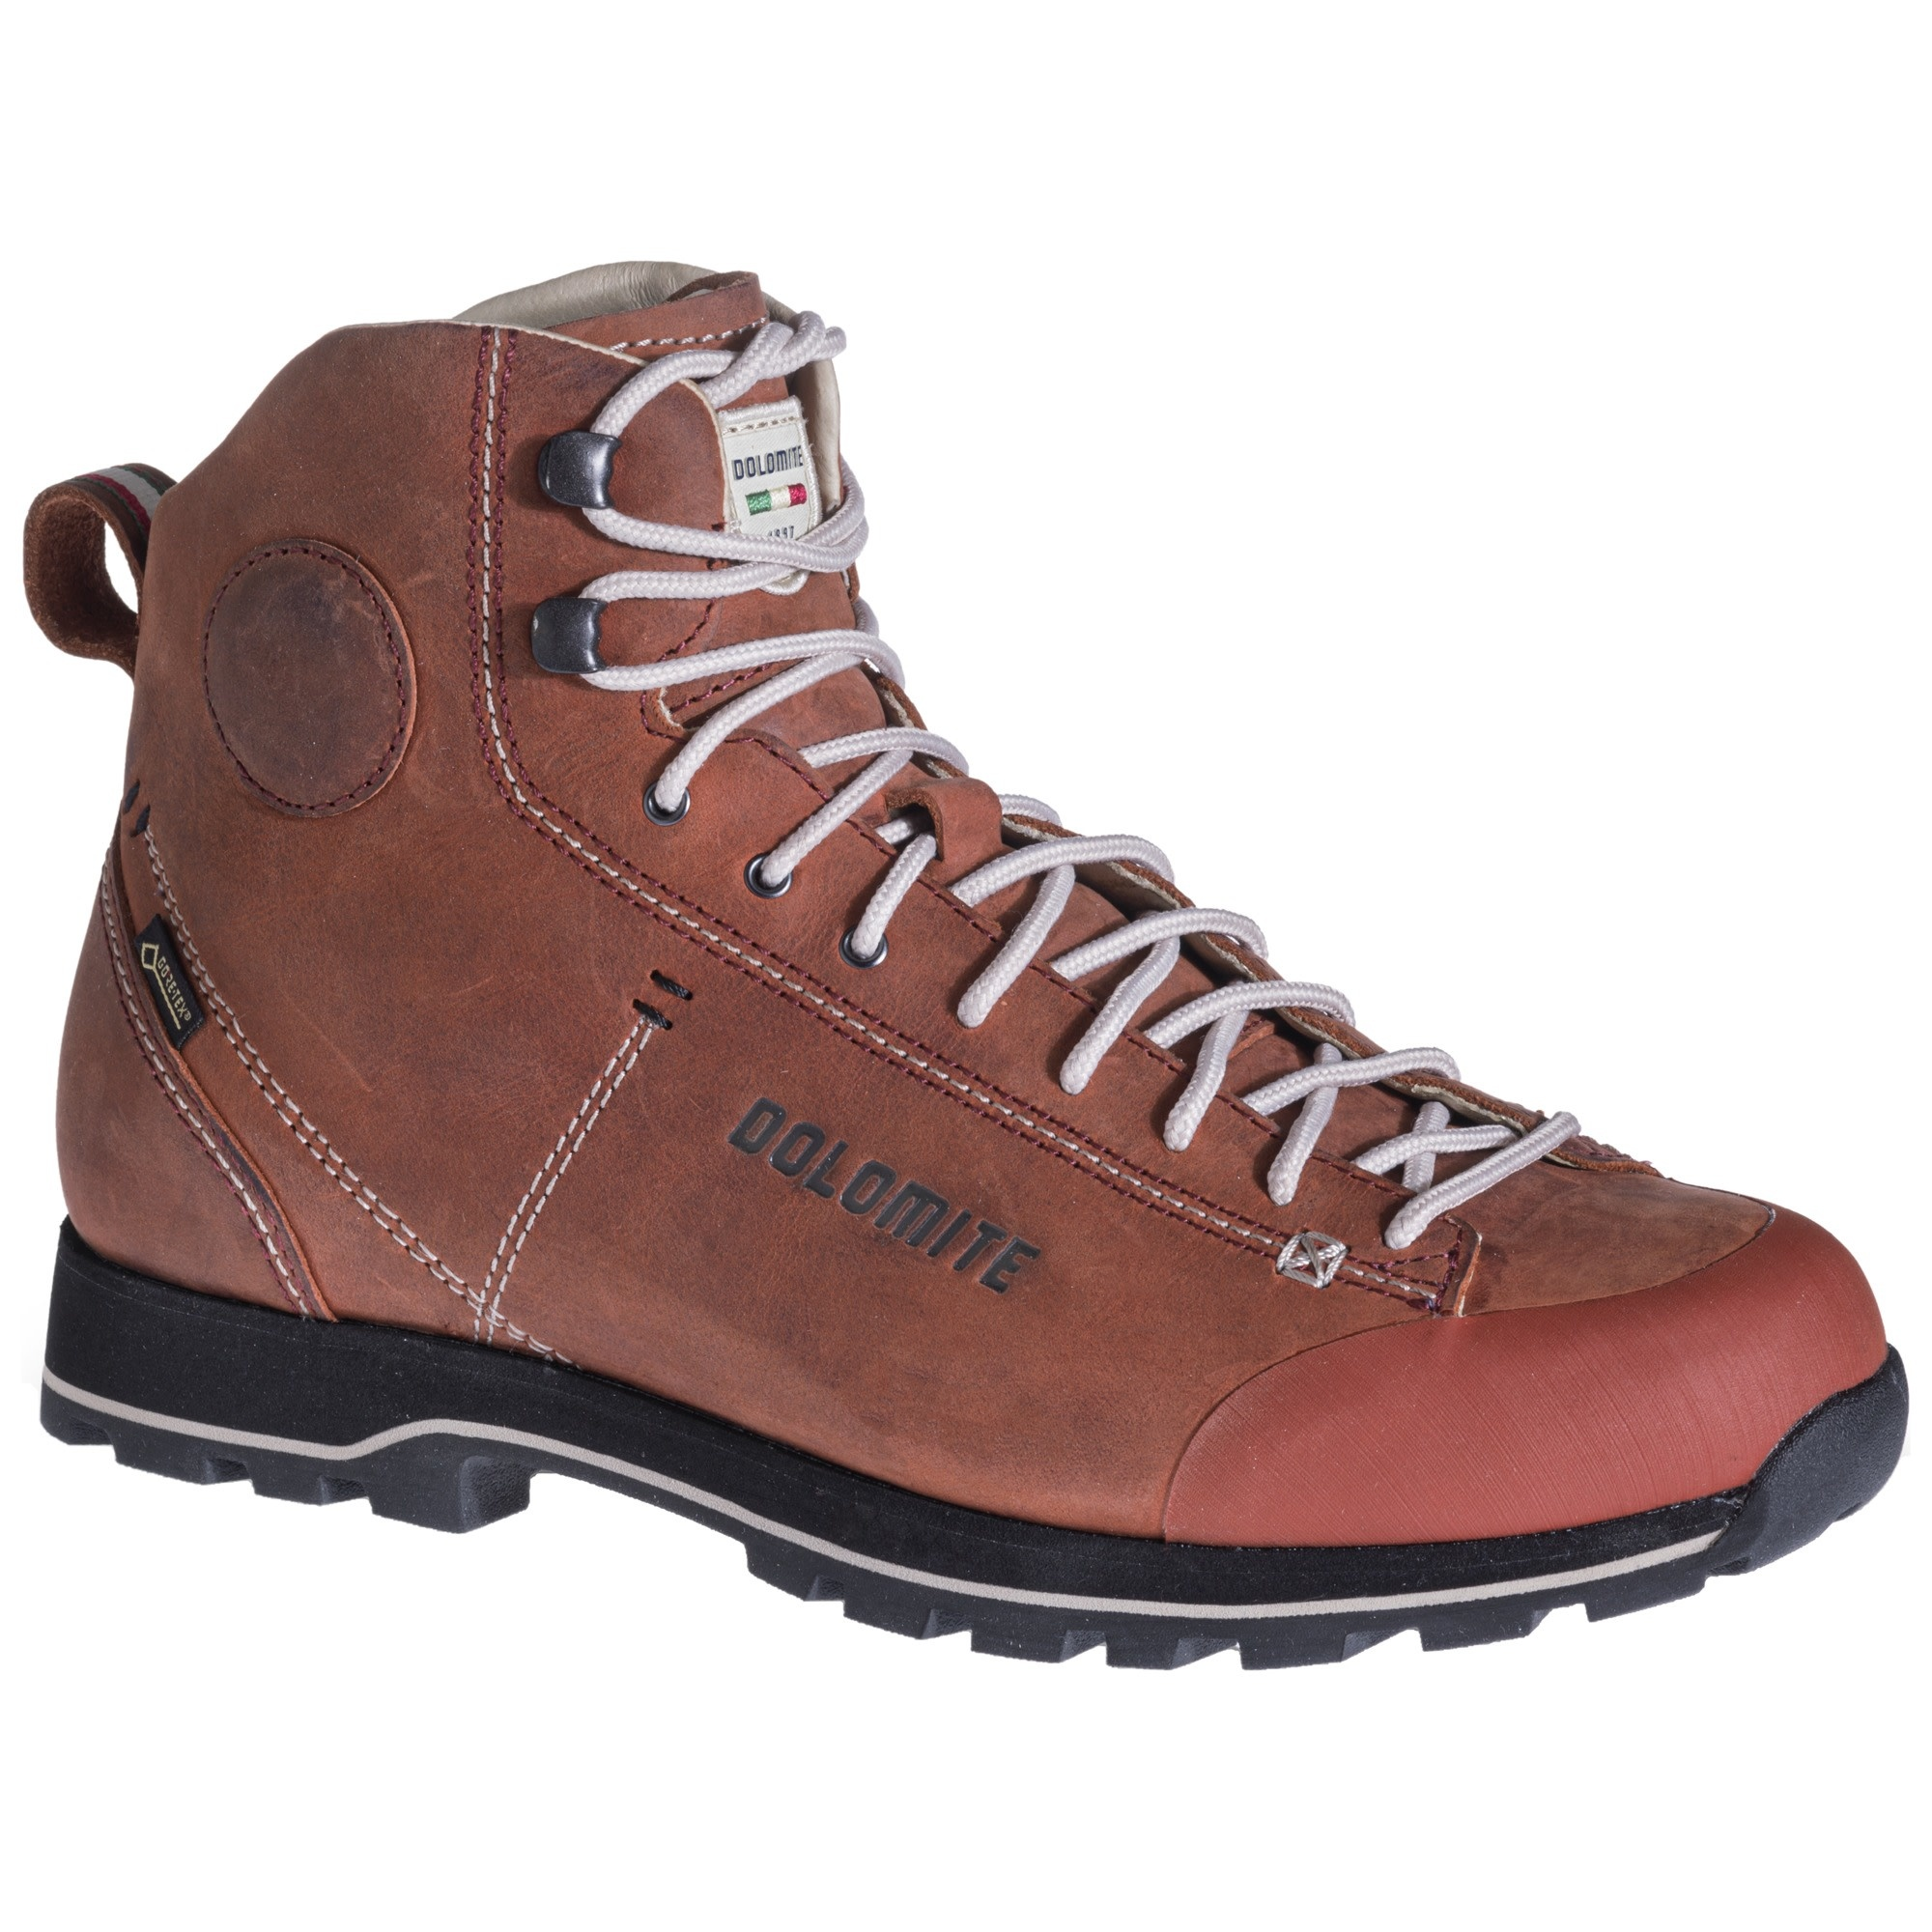 Dolomite 54 High FG GTX Ginger Red 247958 1306